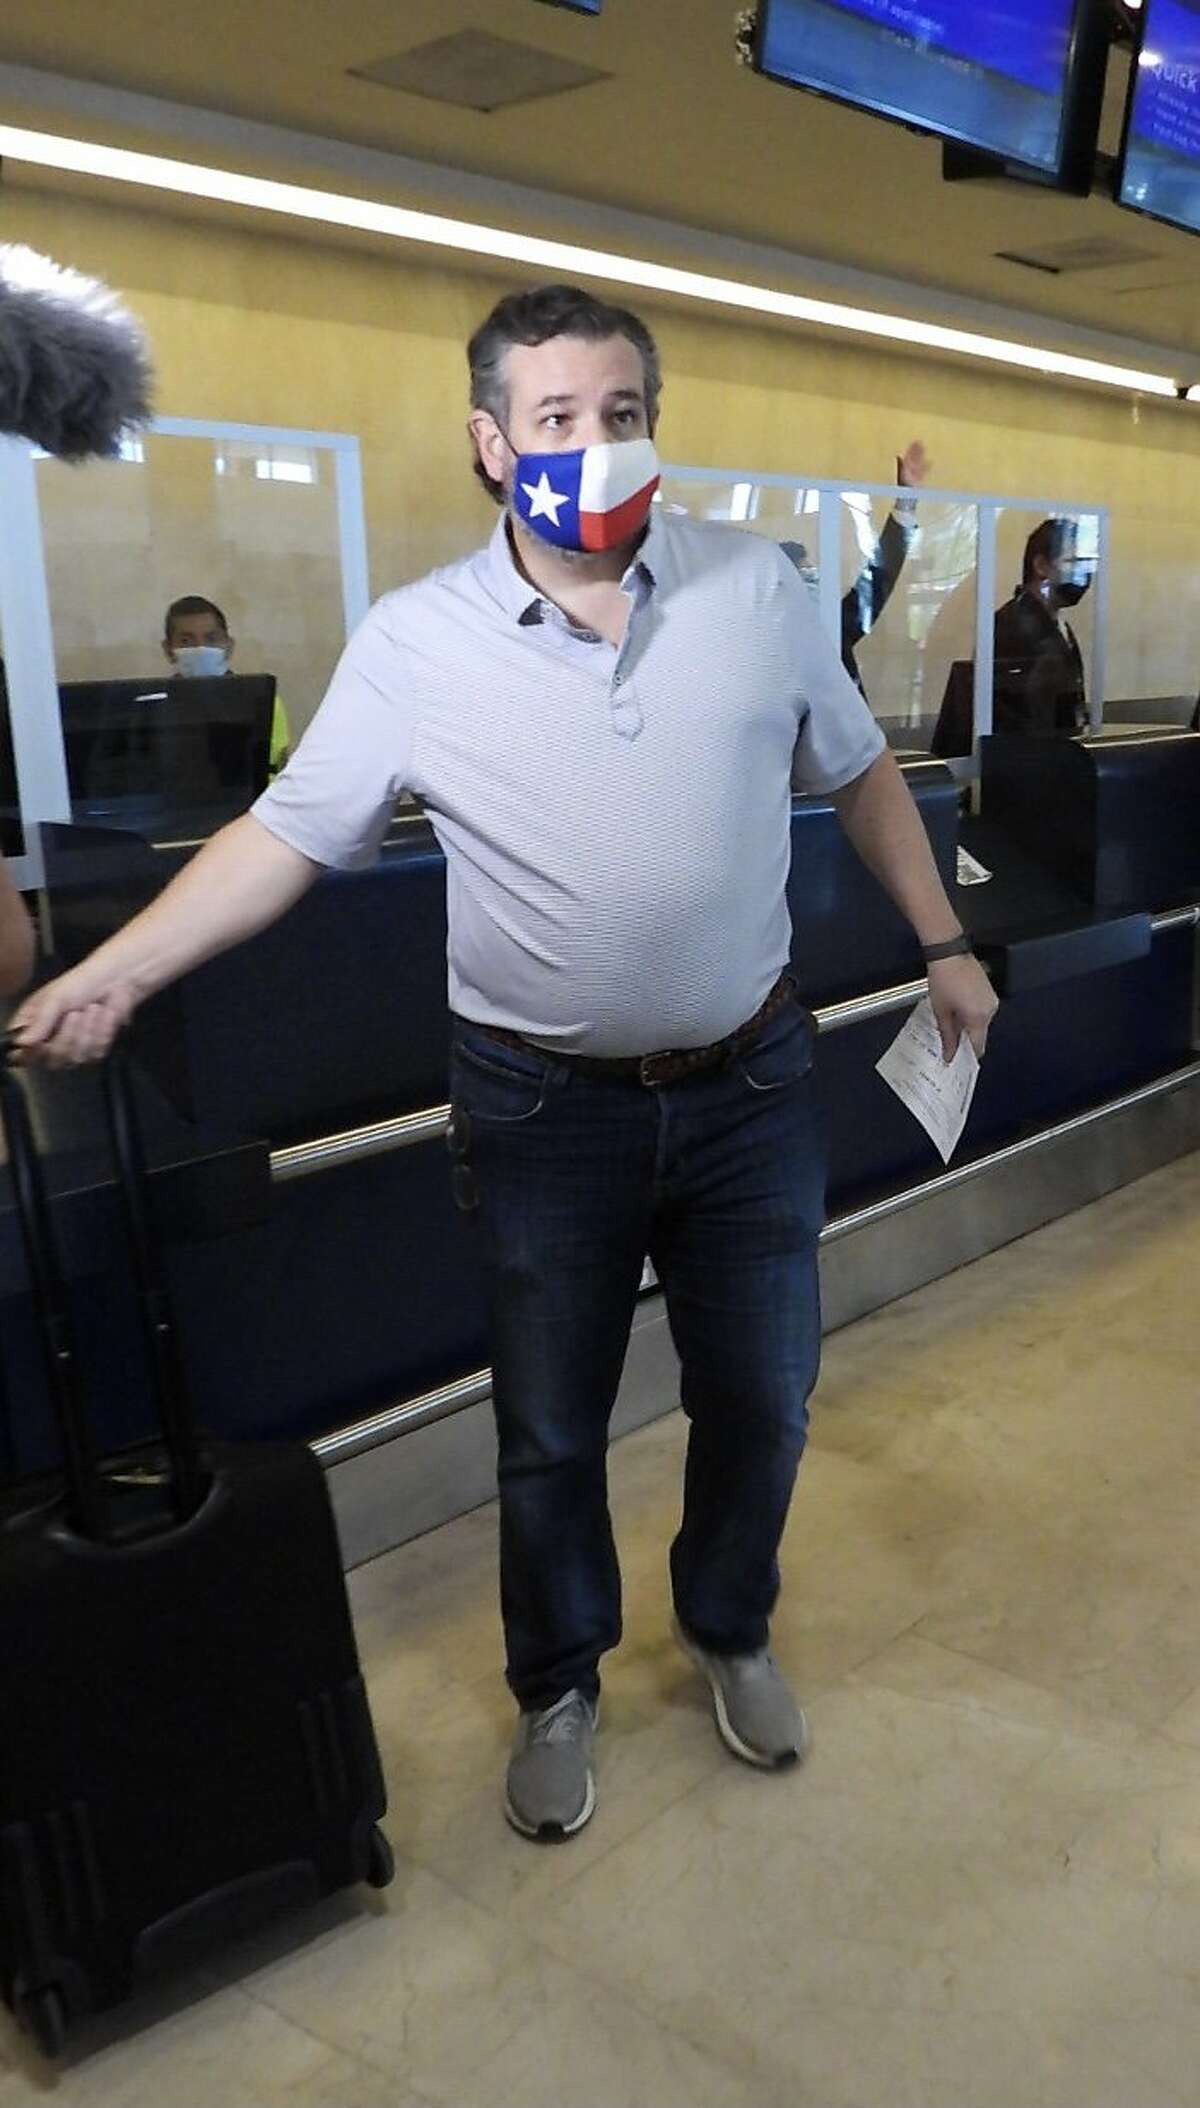 Sen. Ted Cruz (R-TX) checks in for a flight at Cancun International Airport after a backlash over his Mexican family vacation as his home state of Texas endured a Winter storm on February 18, 2021 in Cancun, Quintana Roo, Mexico. The Republican politician came under fire after leaving for the warm holiday destination as hundreds of thousands of people in the lone star state suffered a loss of power. Reports stated that Cruz was due to catch a flight back to Houston, Texas.